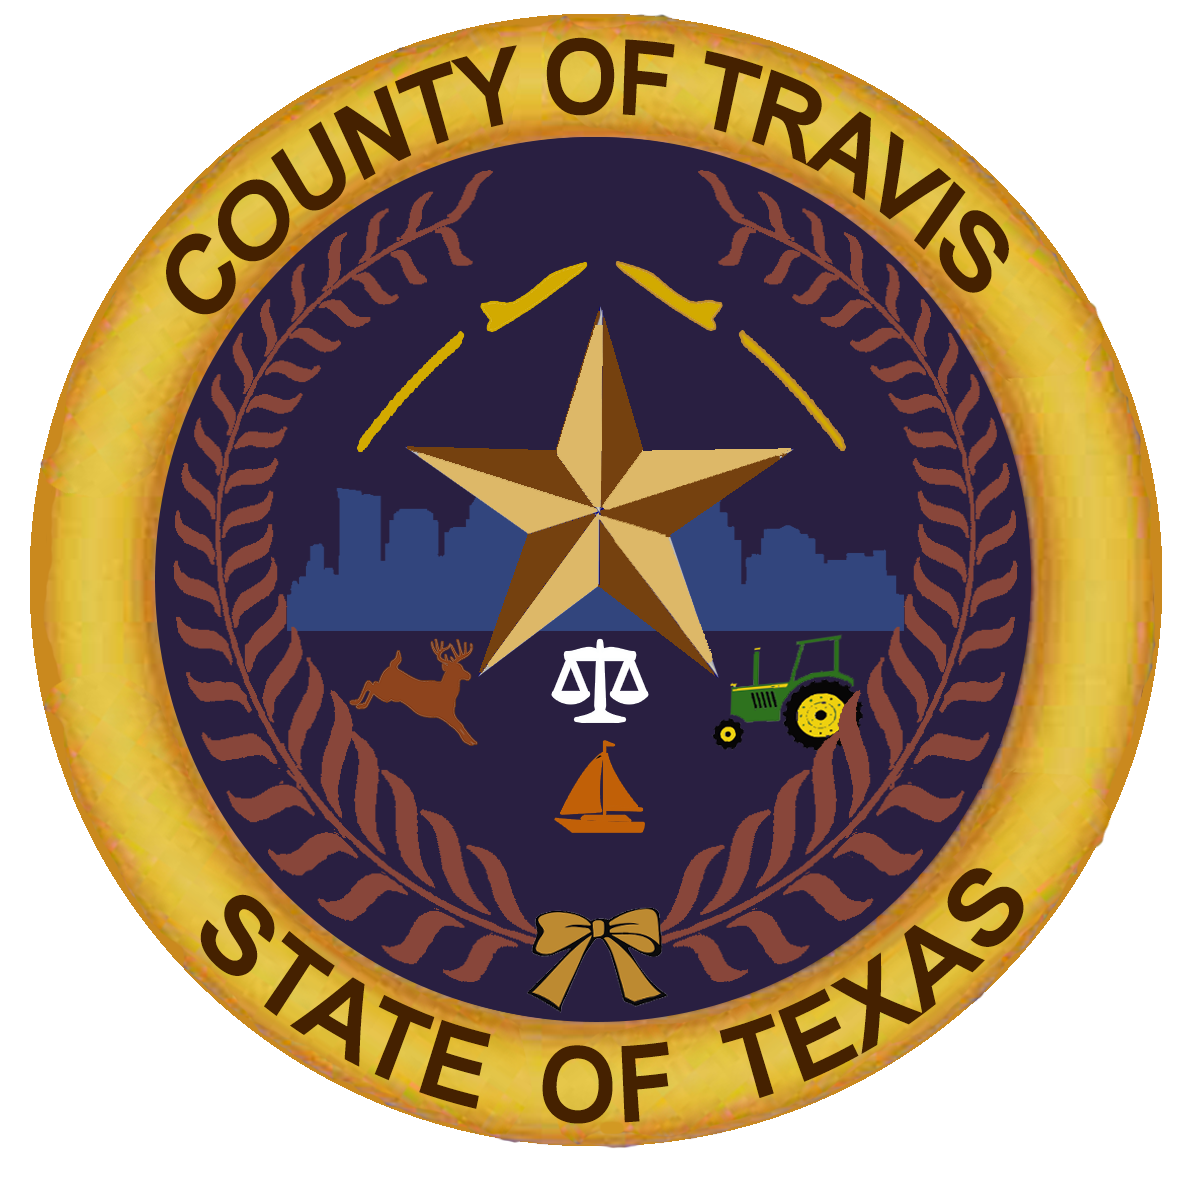 travis county Find therapists in travis county, texas, psychologists, marriage counseling,  therapy, counselors, psychiatrists, child psychologists and couples counseling.